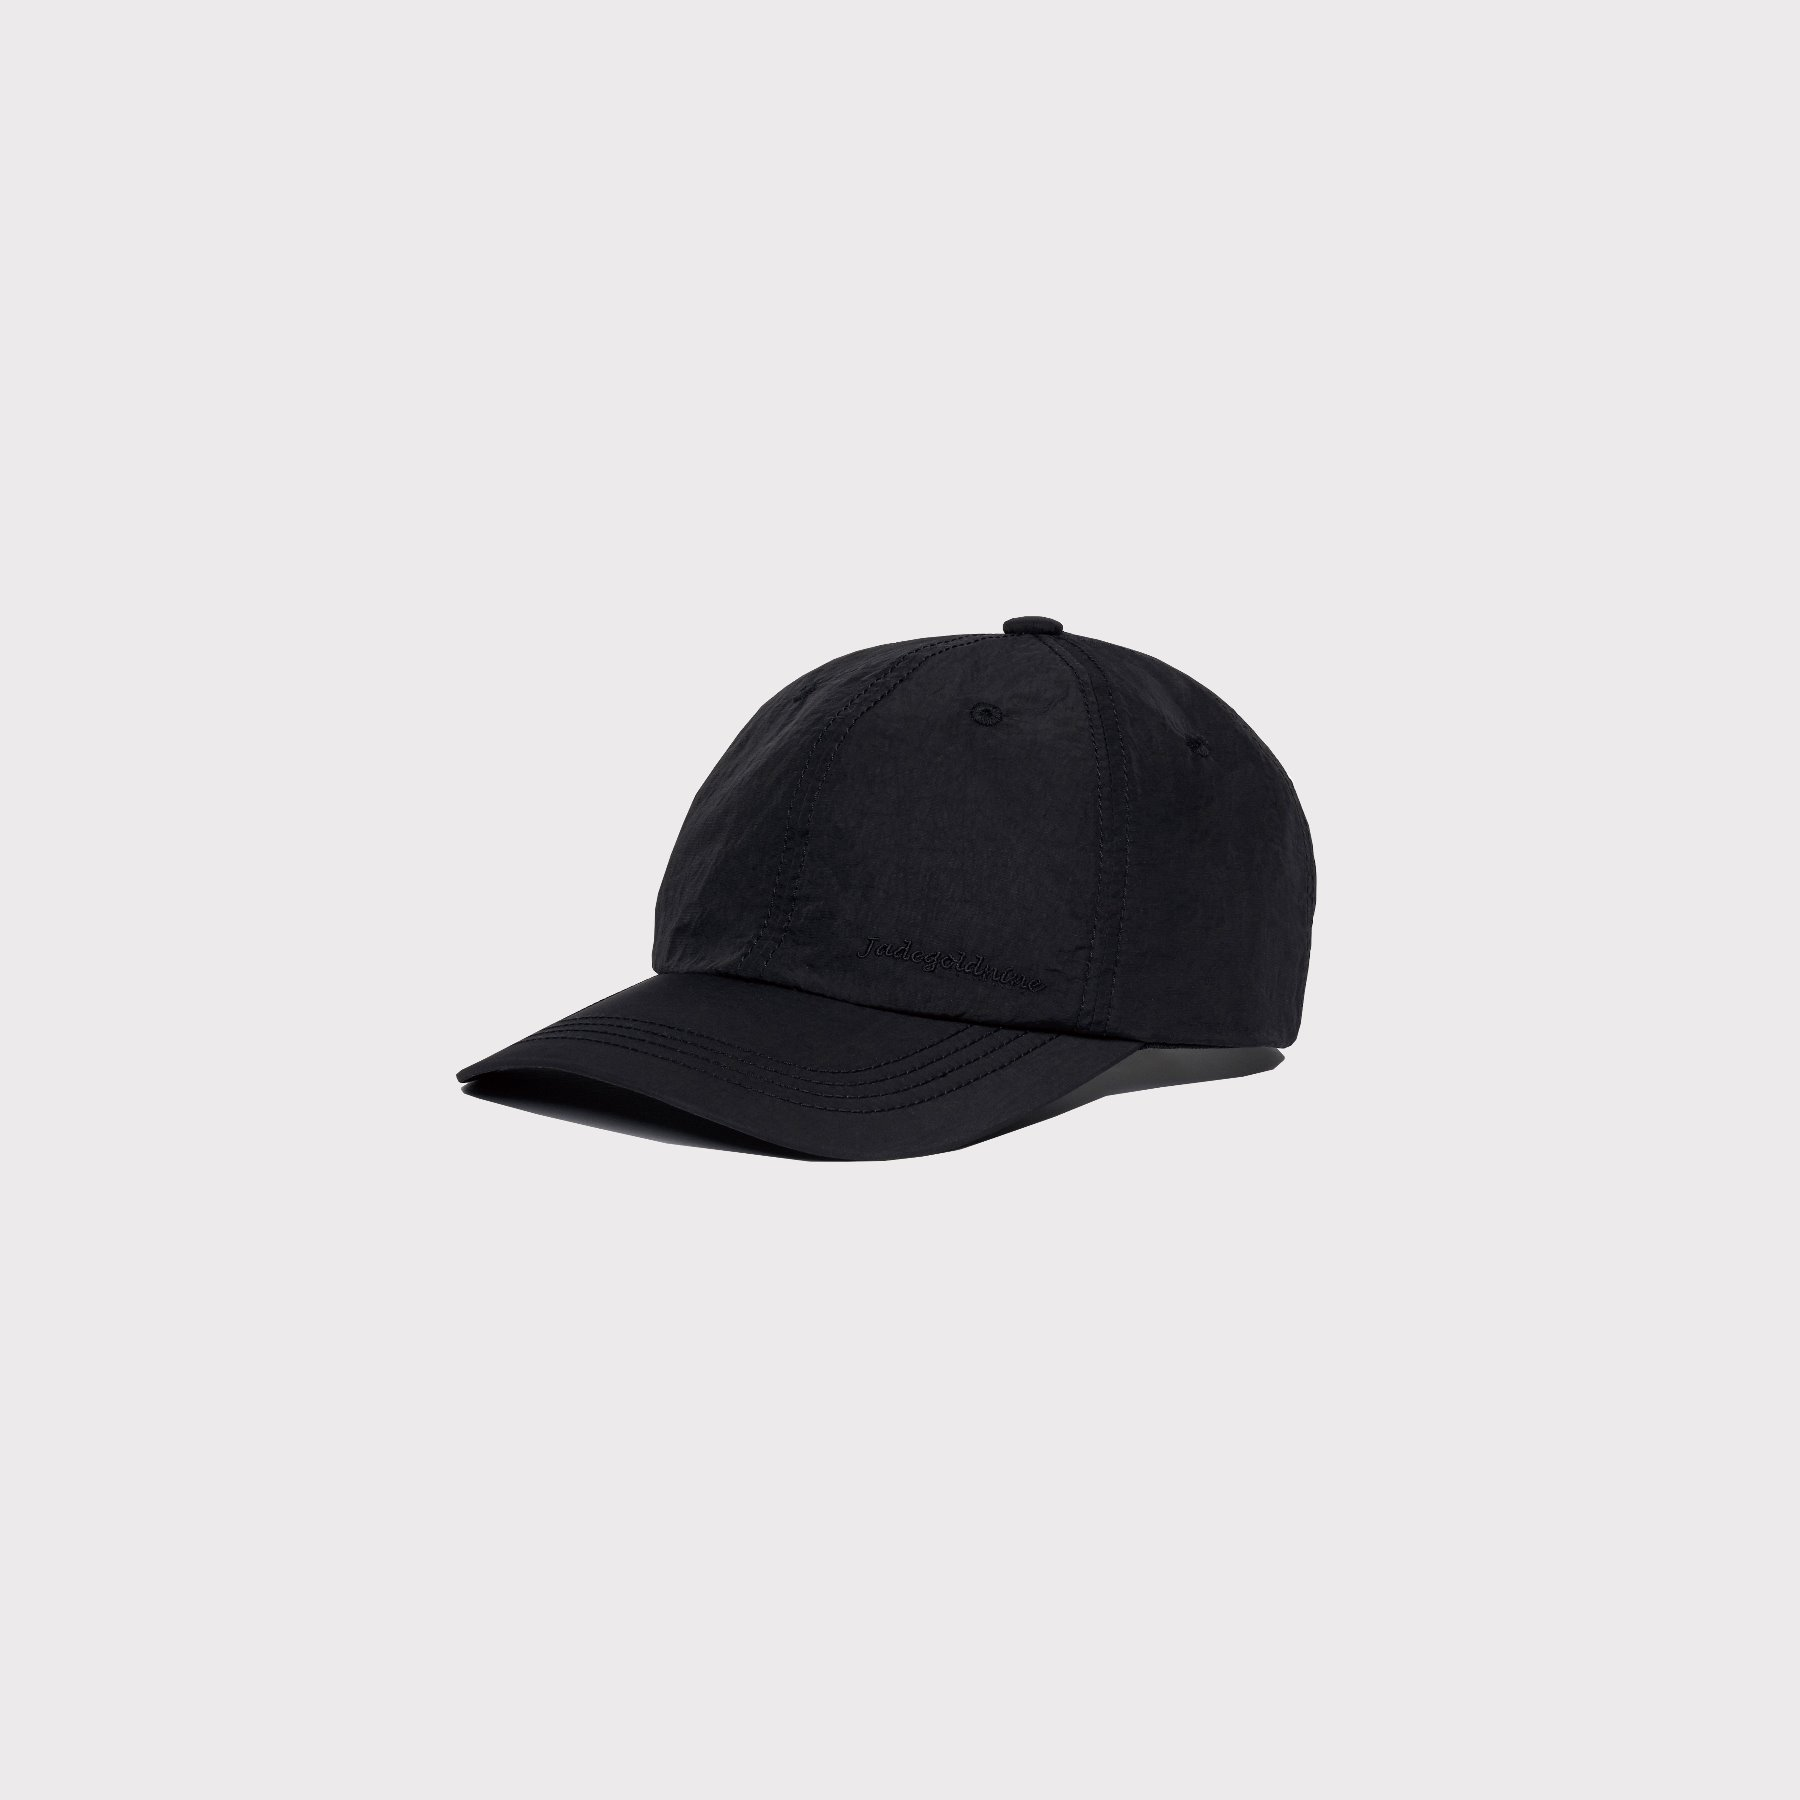 colorful cap (black)